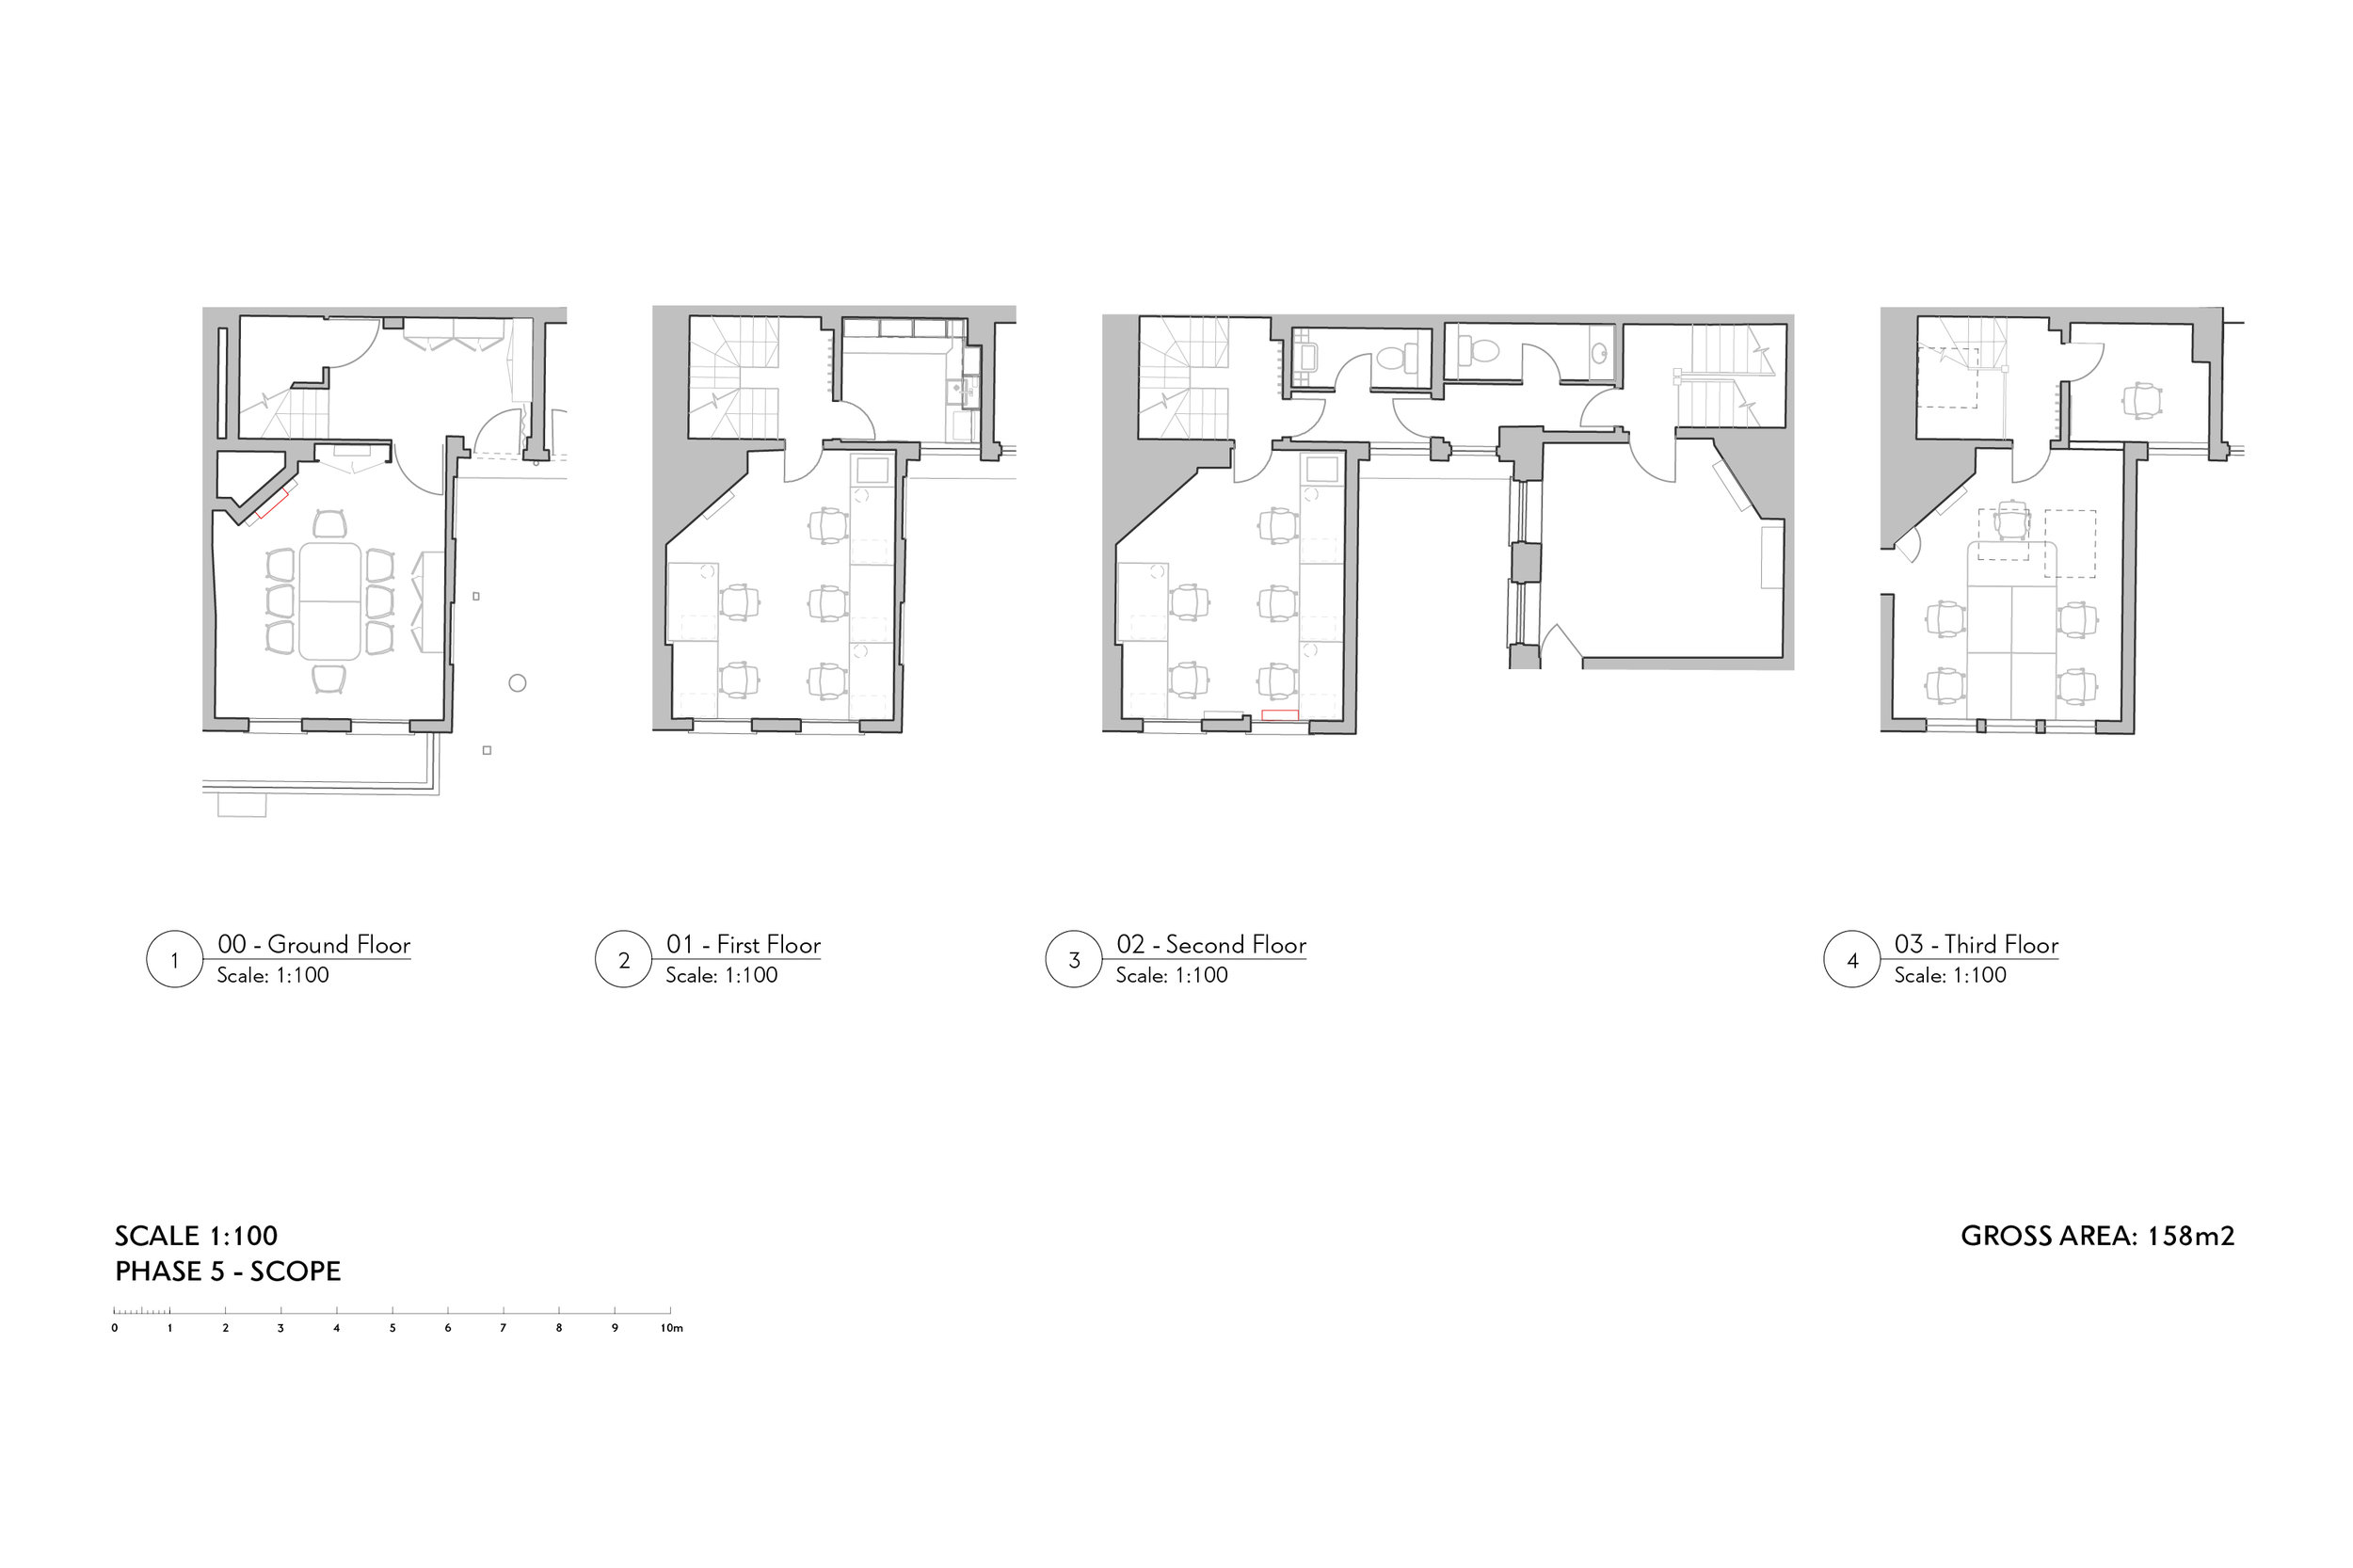 Floor Plan of Interior Fit Out Design at BB&R